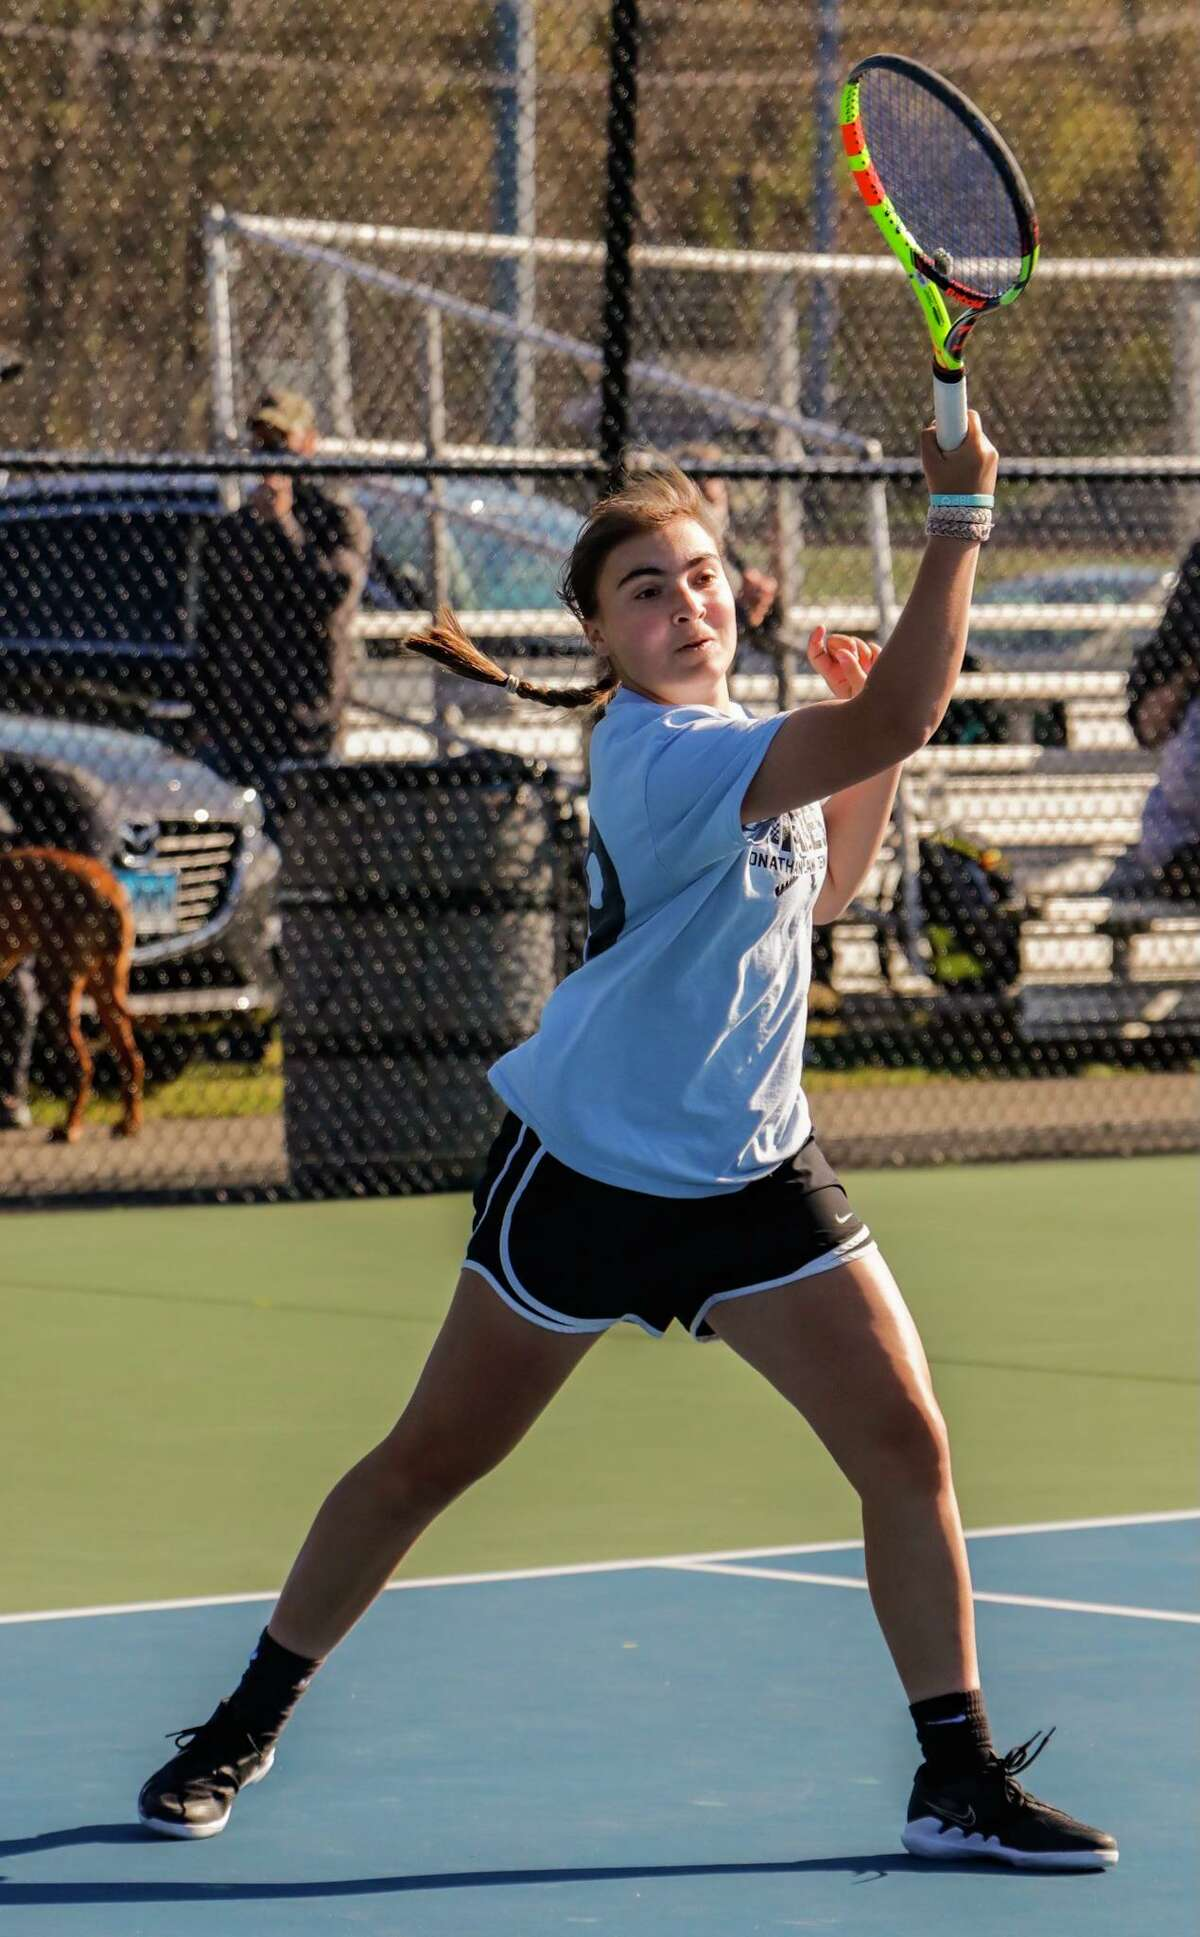 Lucia Pino earned All-State as a freshman. She is 10-0 at No. 1 singles as a junior.